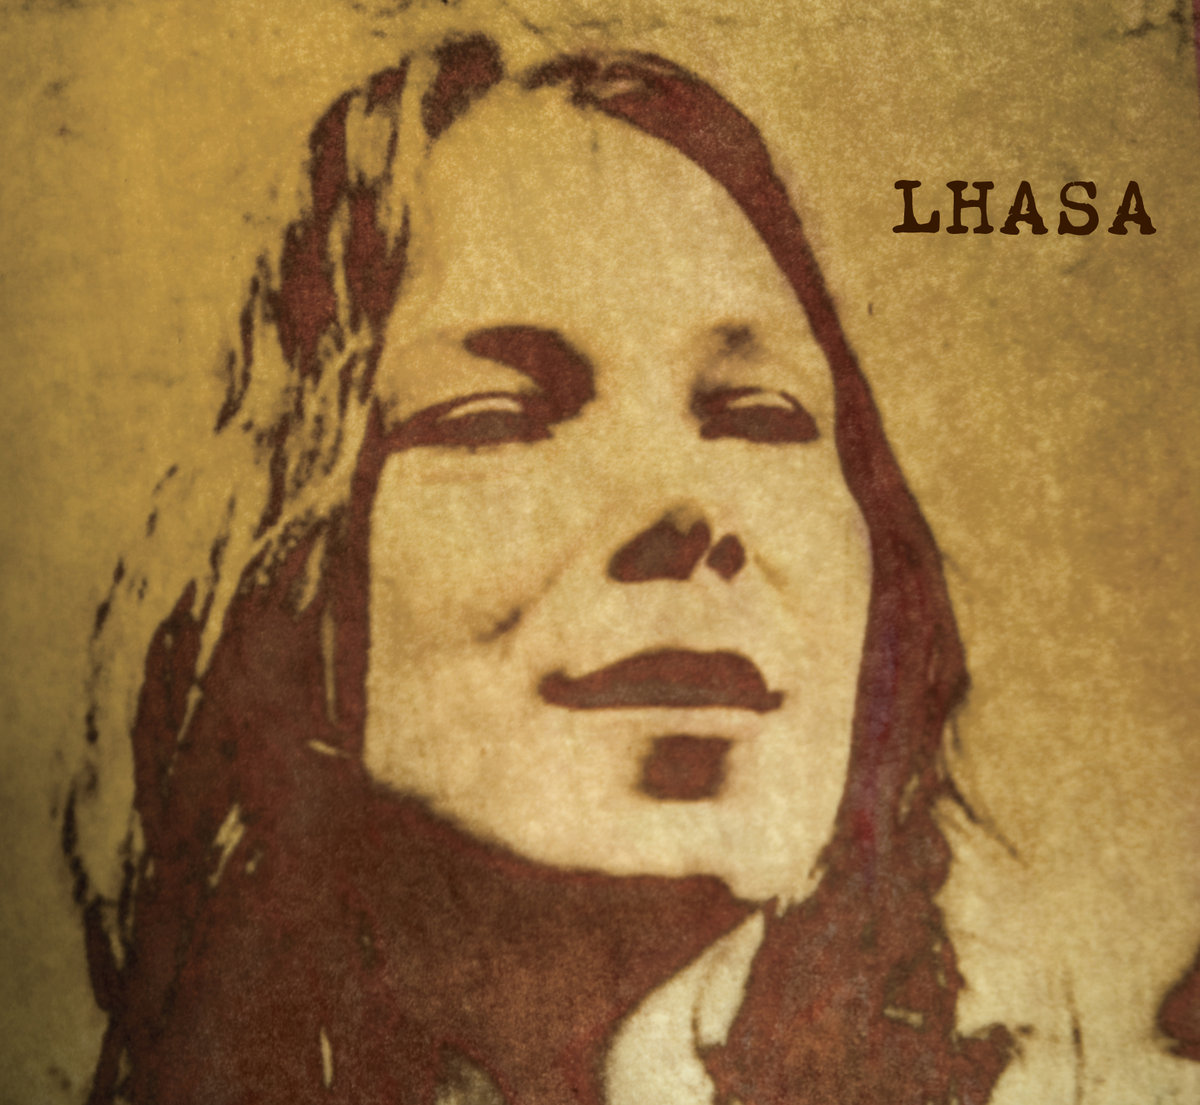 Lhasa de sela discography torrent download free download